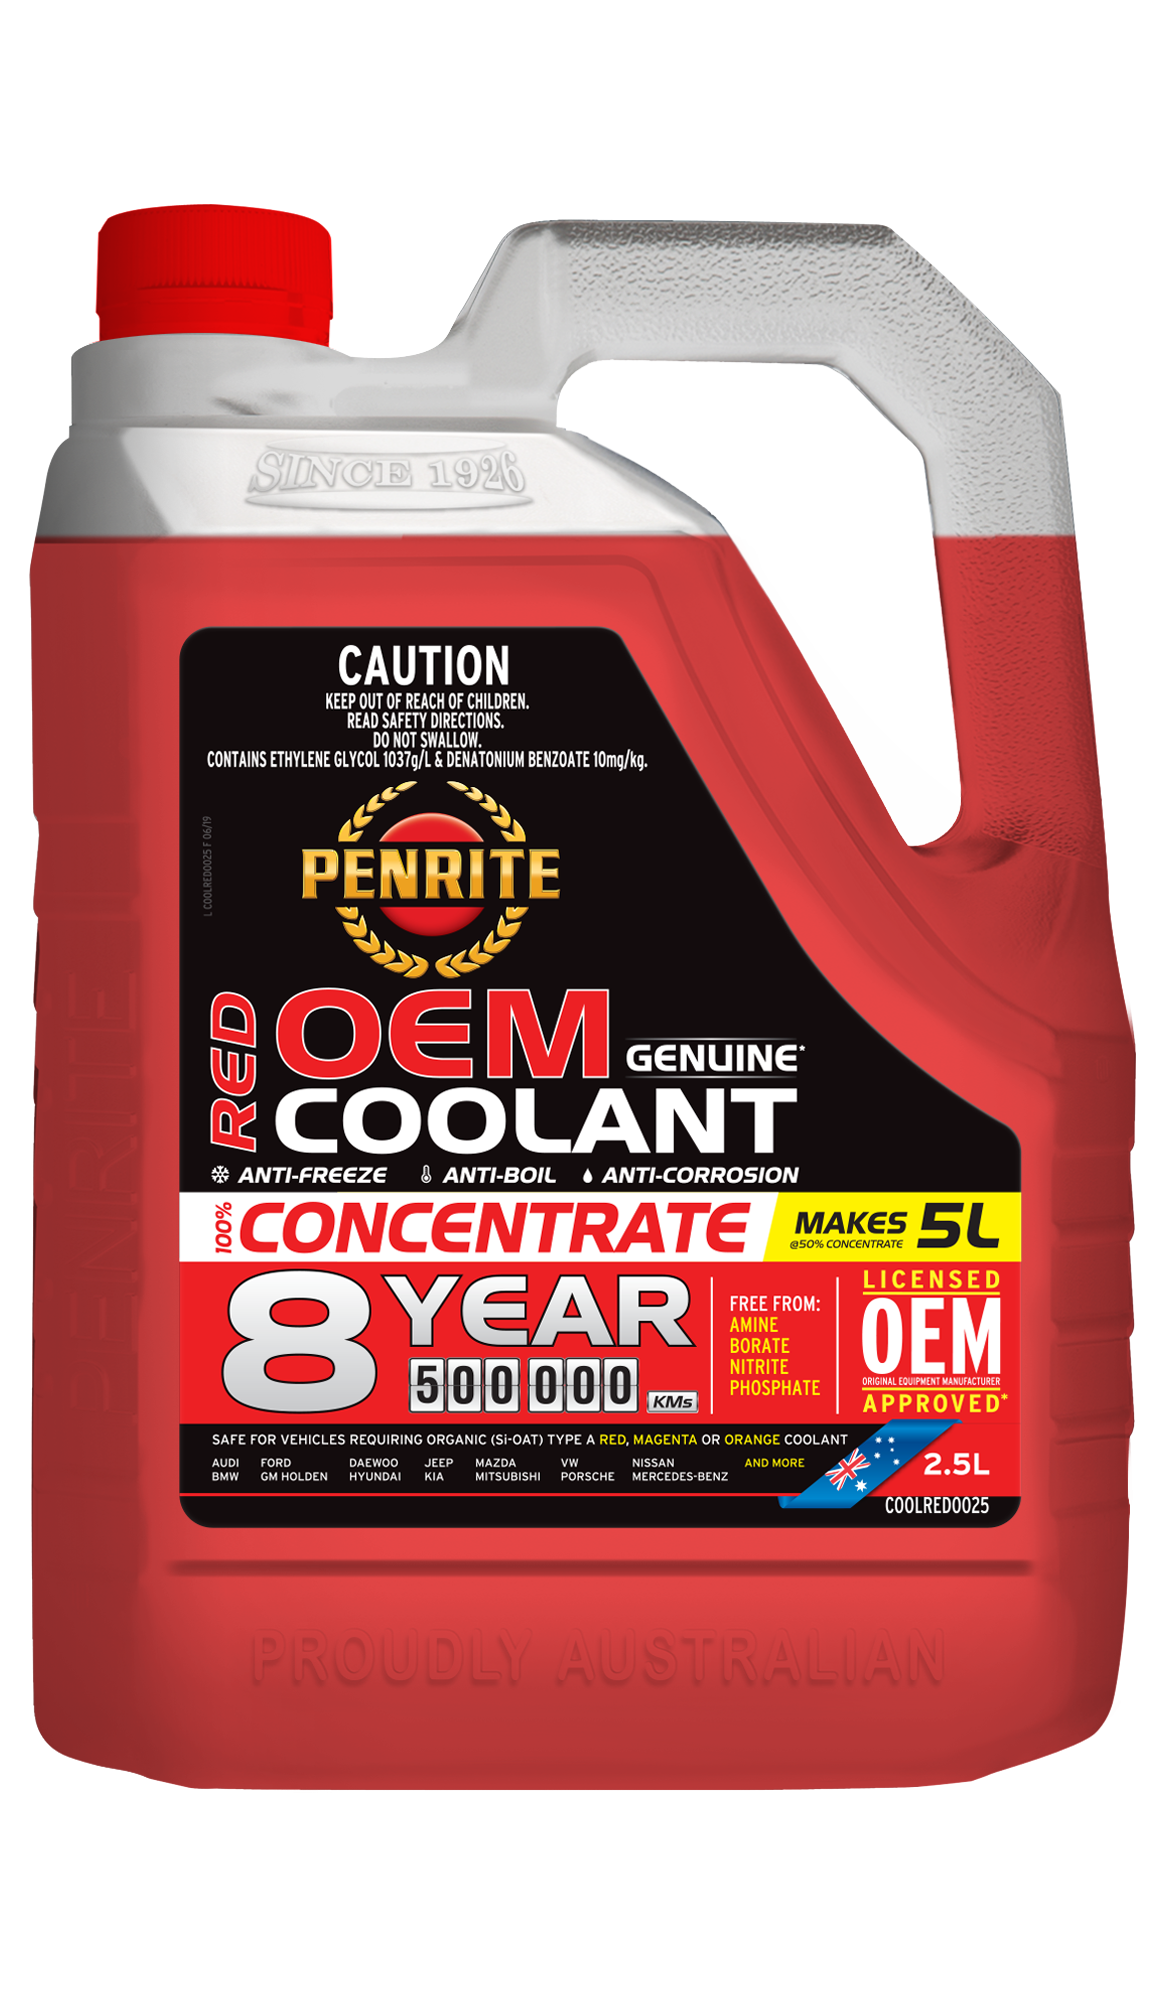 8 YEAR 500,000KM RED CONCENTRATE | Penrite Oil